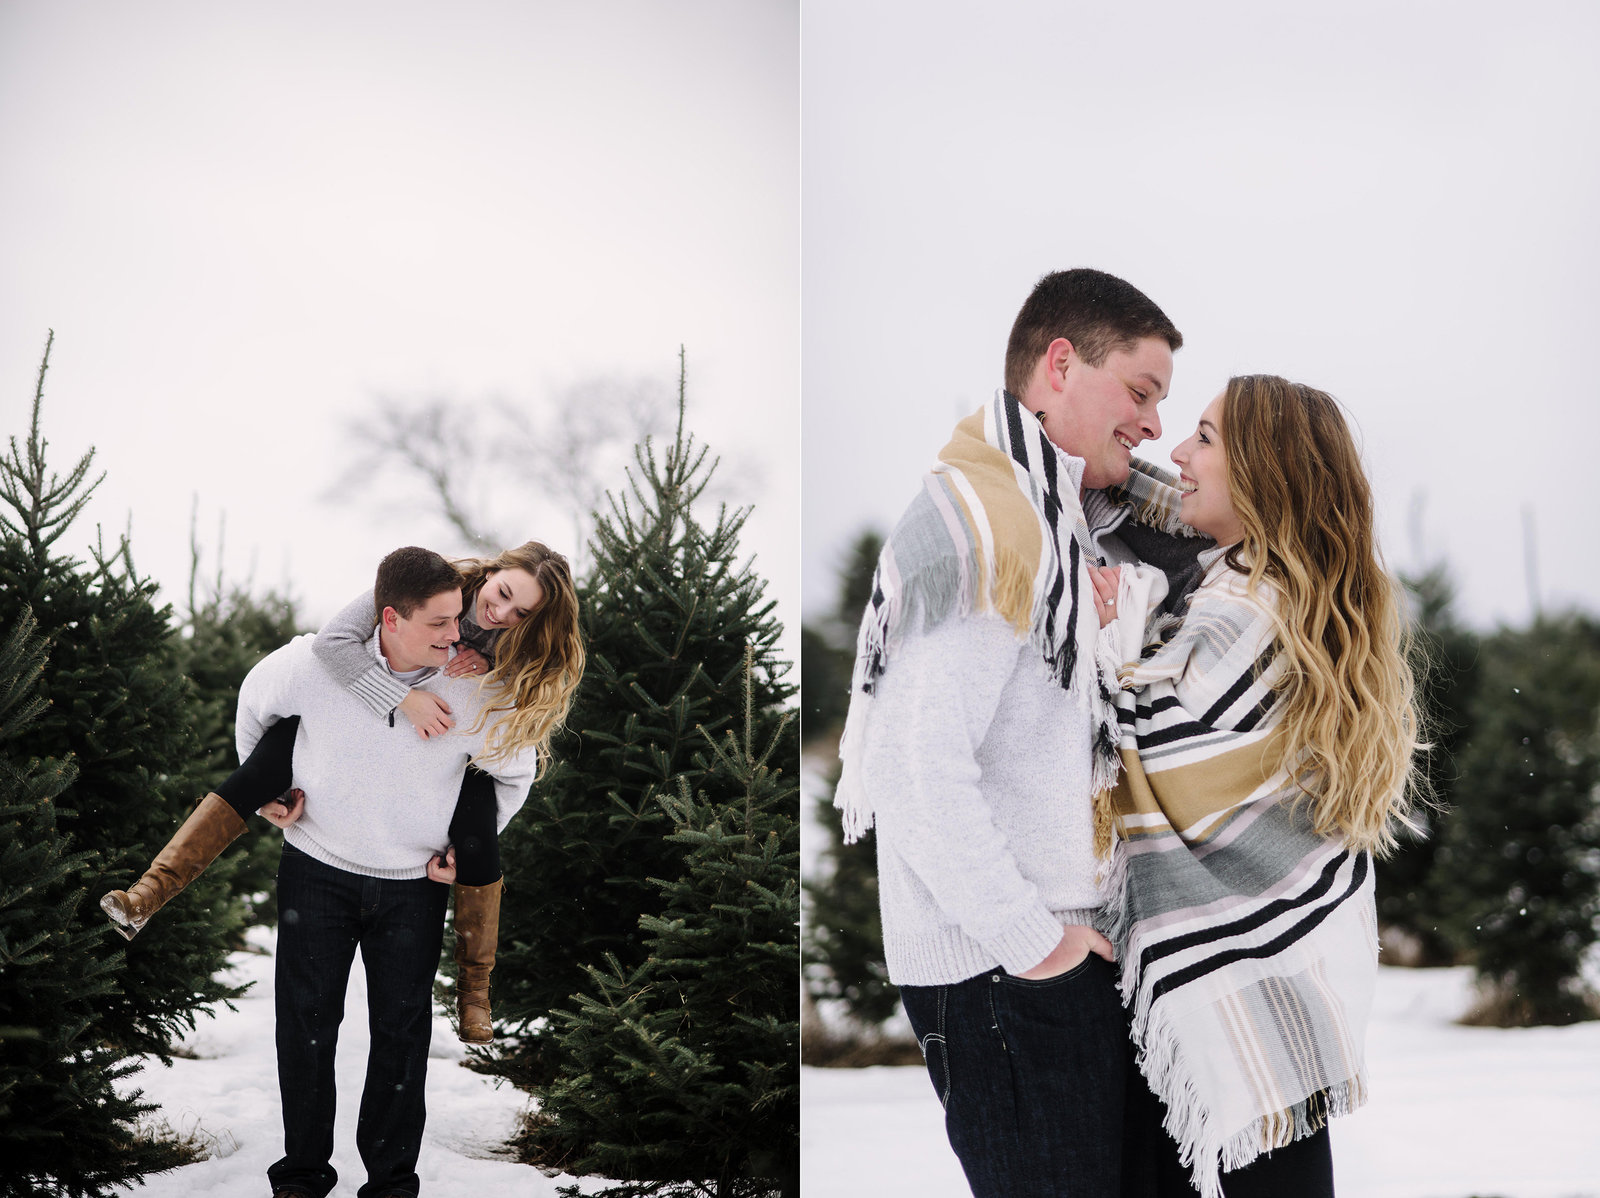 Lexie_Roger_Winter_Engagement_4034 compy